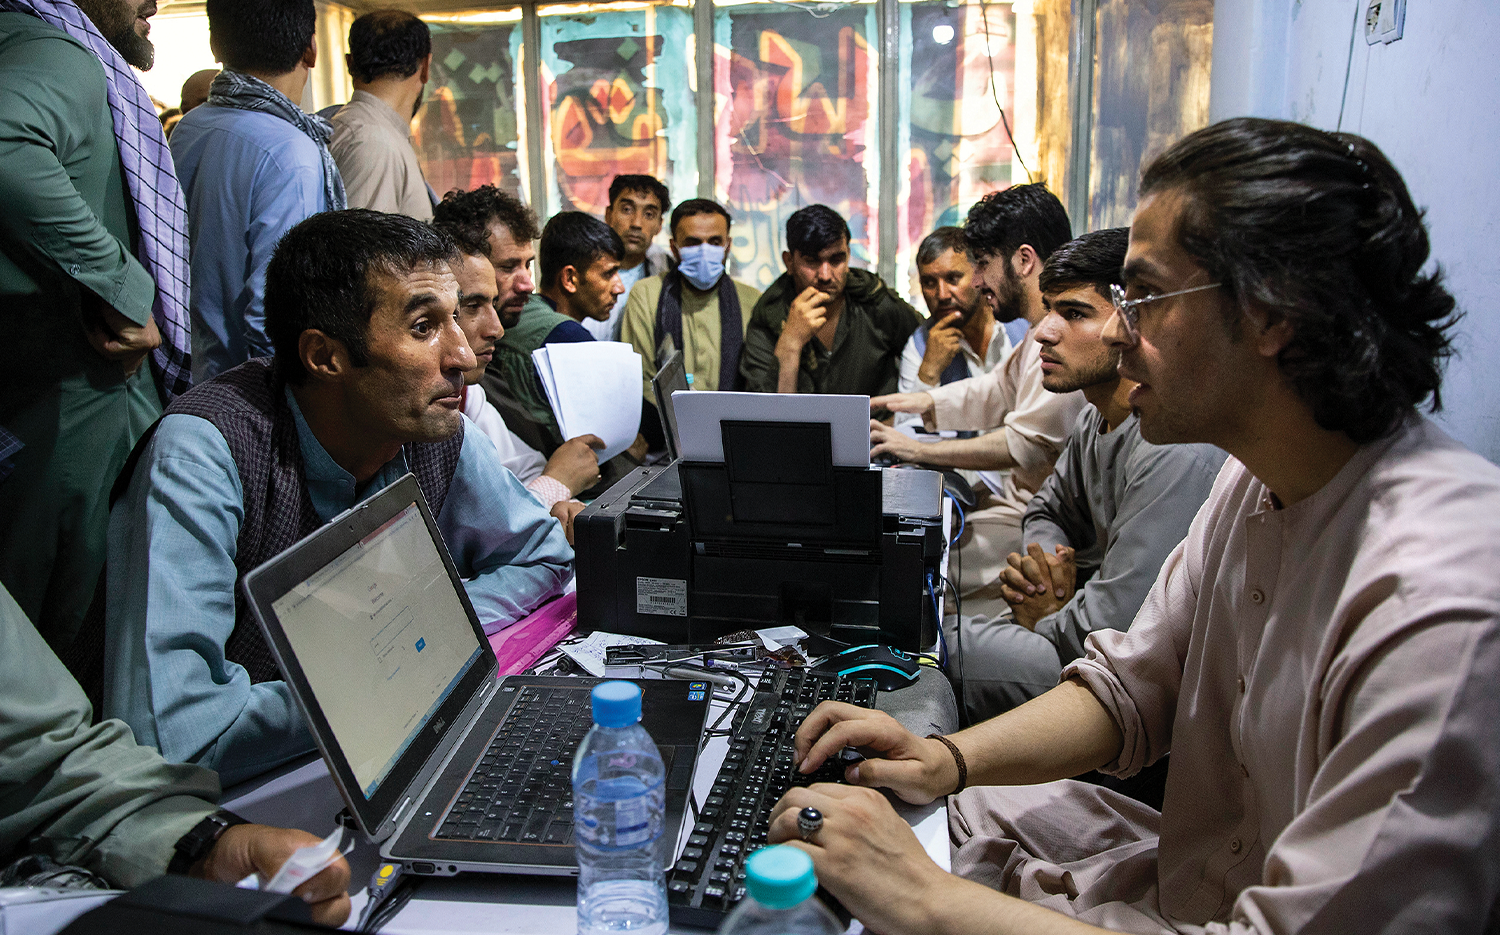 Afghan Special Immigrant Visa (SIV) applicants crowd into an internet café in Kabul on Aug. 8 to apply for the SIV program.